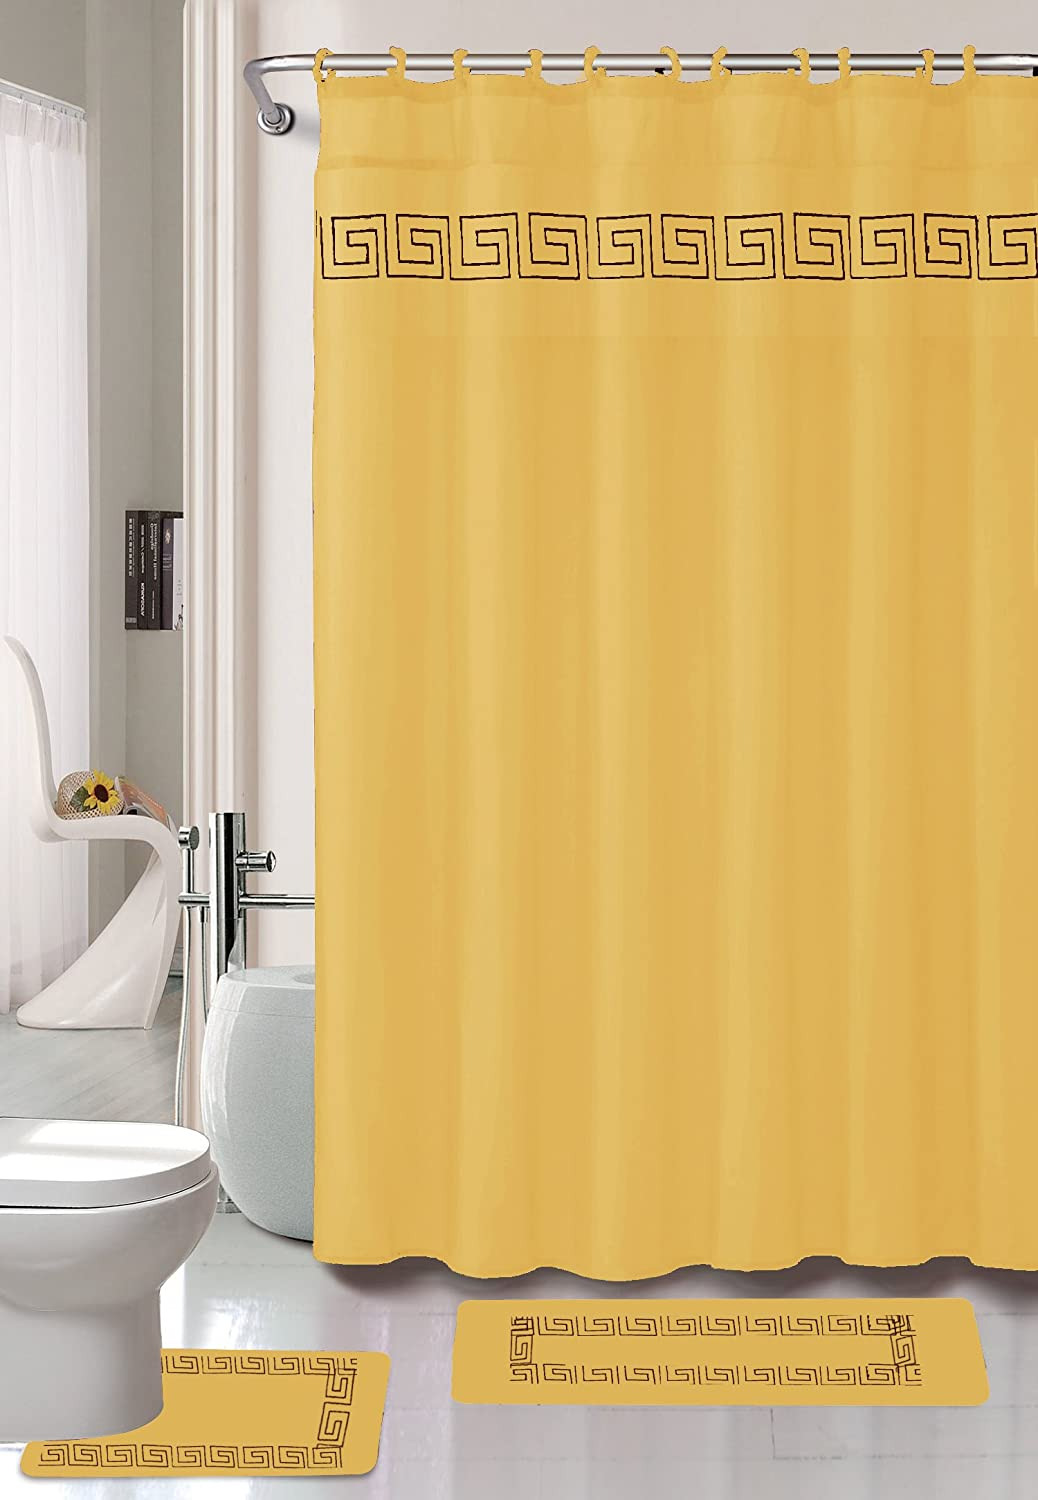 """Kashi Home 15 Piece Shower Curtain Set, Includes Curtain, Hooks and 2 Rugs, 70"""" x 70"""" Greek Key Geometric Design Series in Gold"""